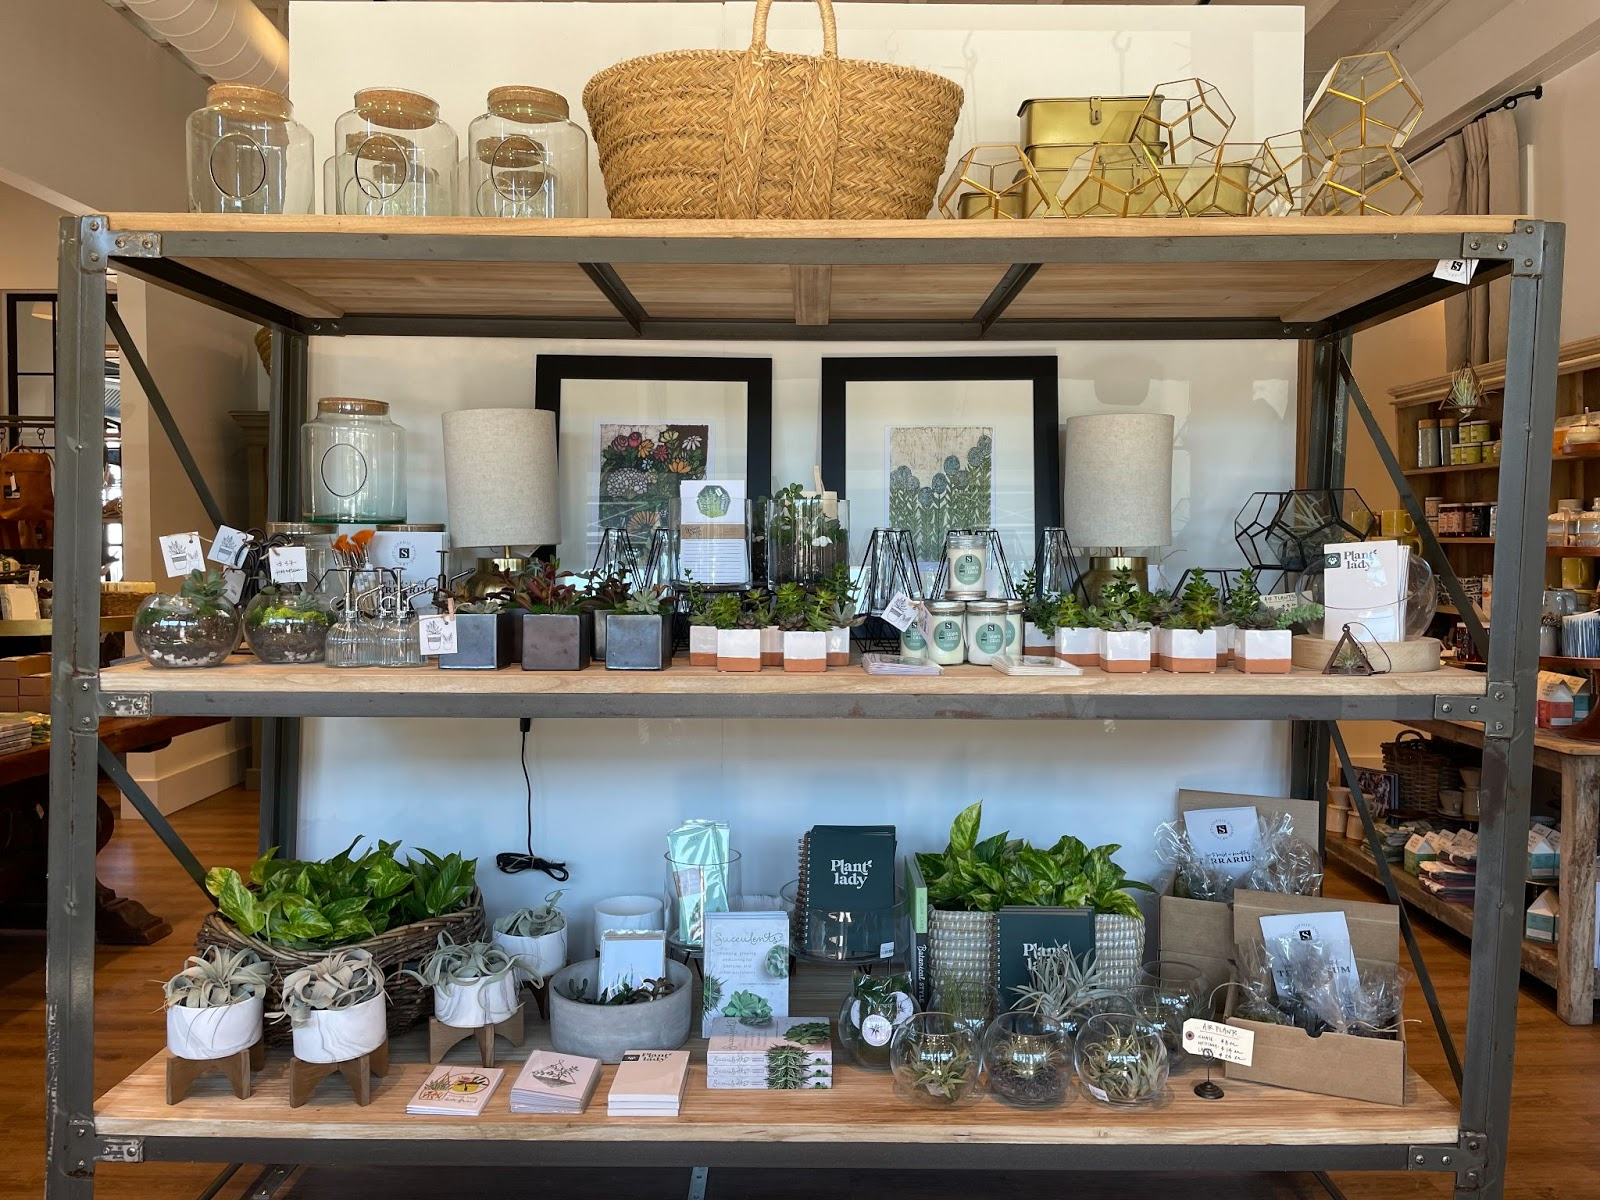 Succulents, pots, and vases on shelves